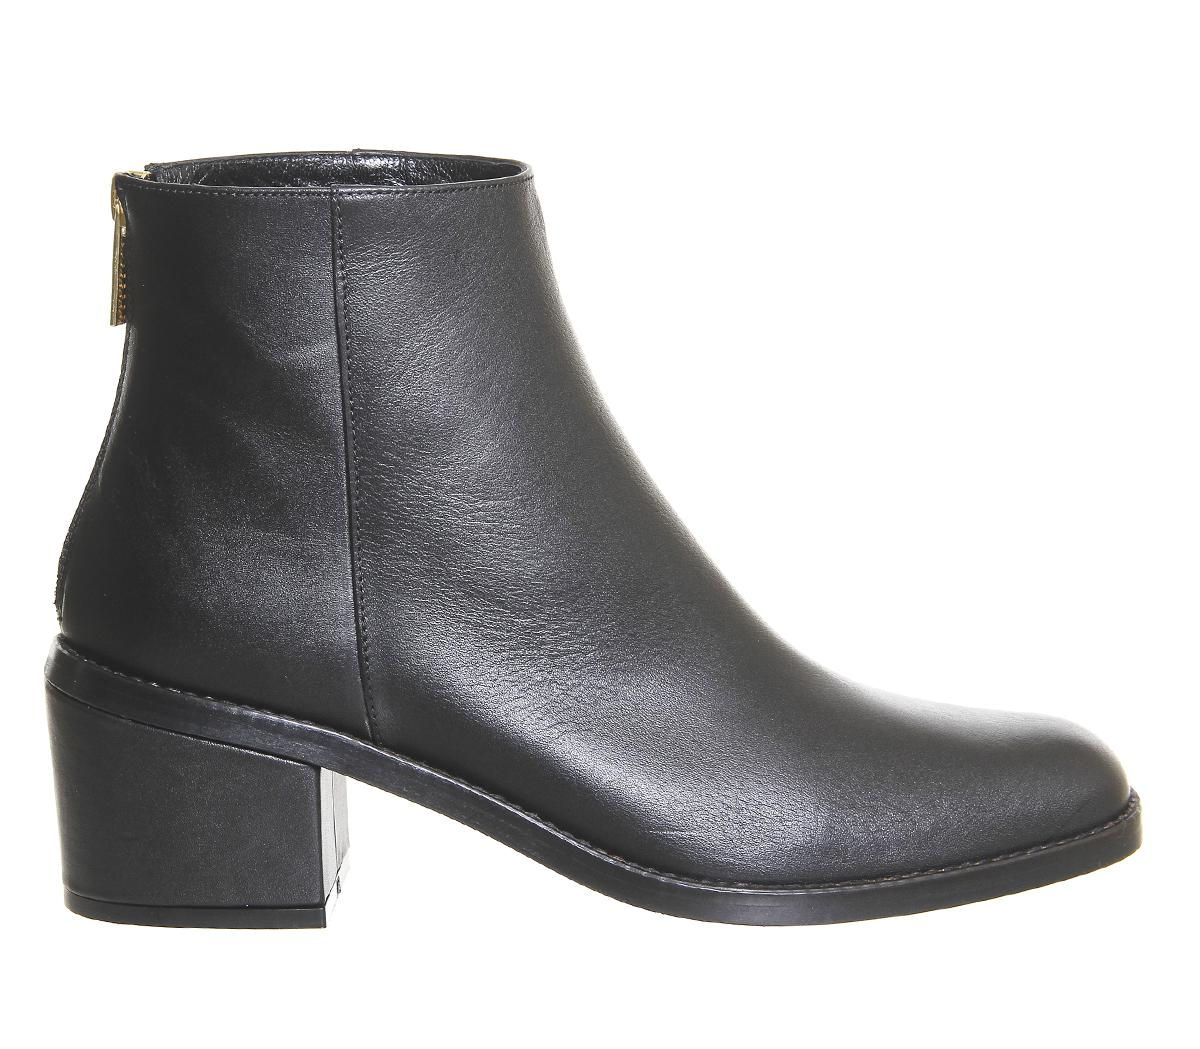 Office Leather Premium Berlin Ankle Boots in Black